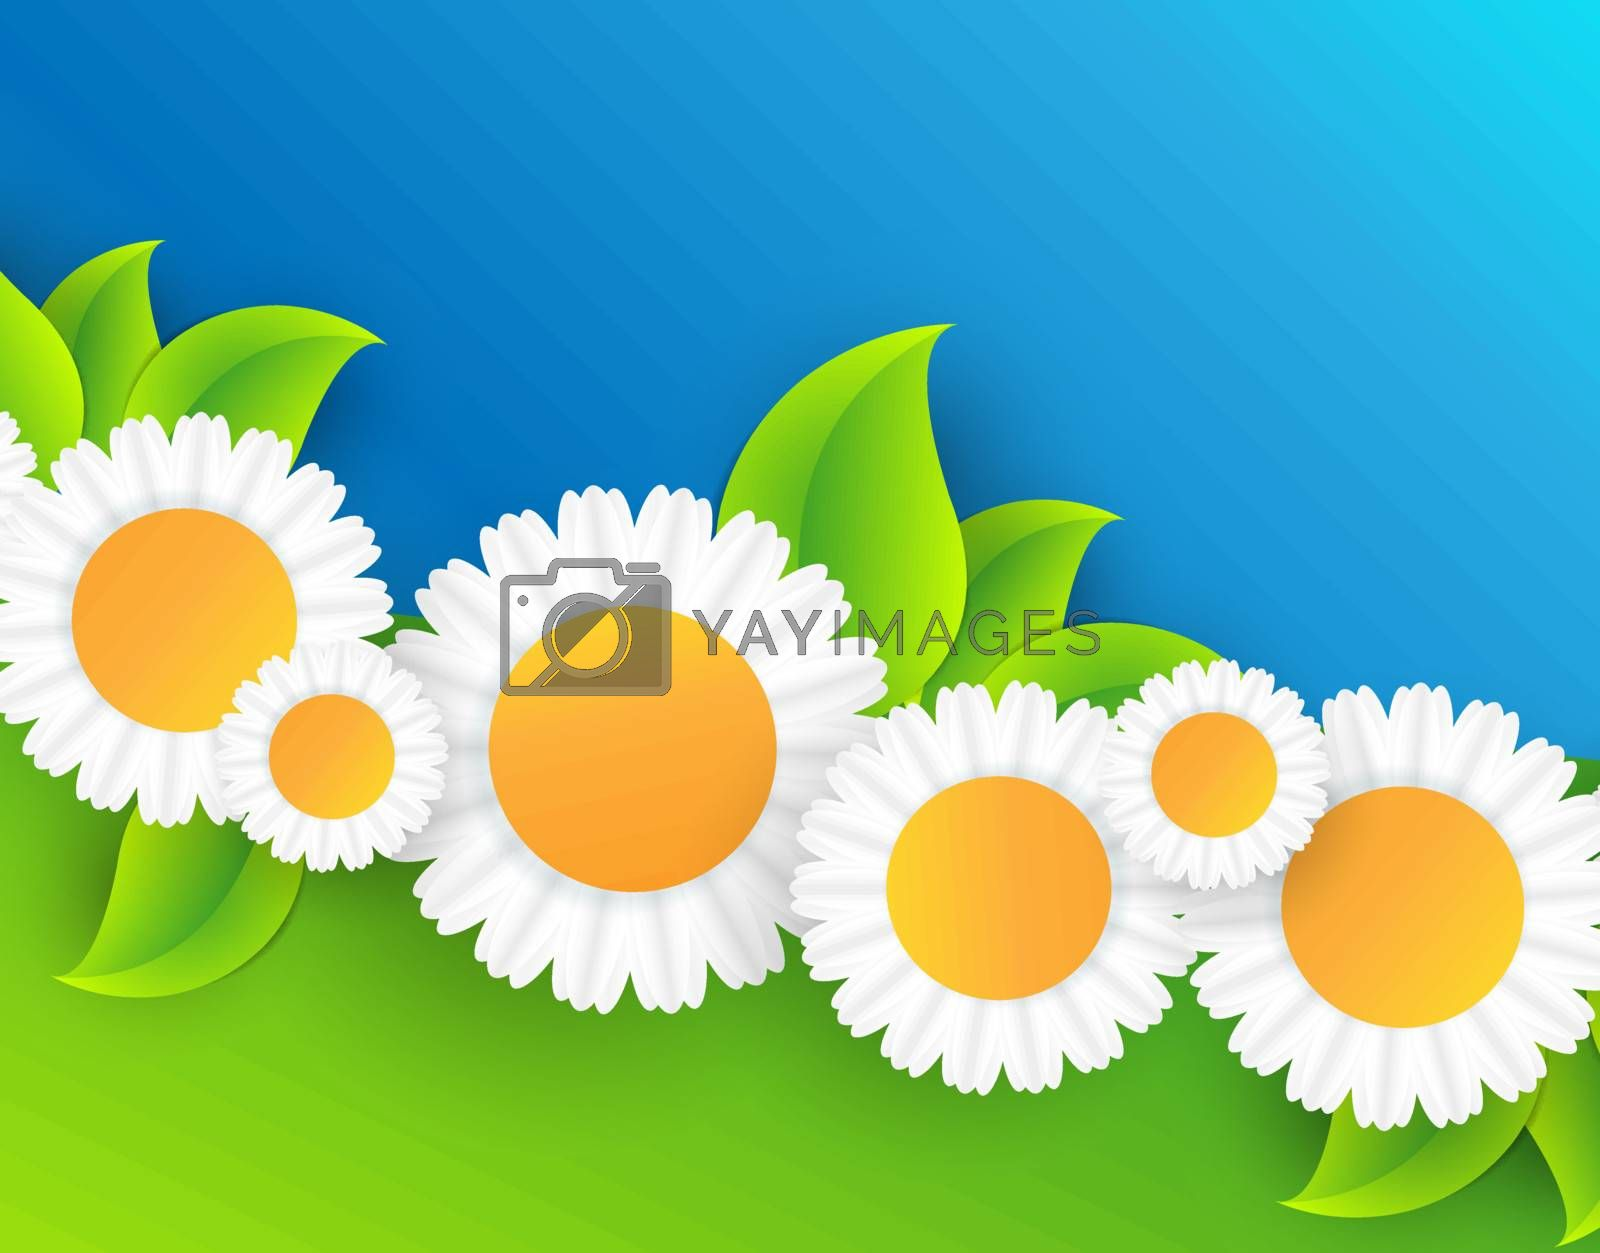 Royalty free image of floral abstract vector frame by marivlada